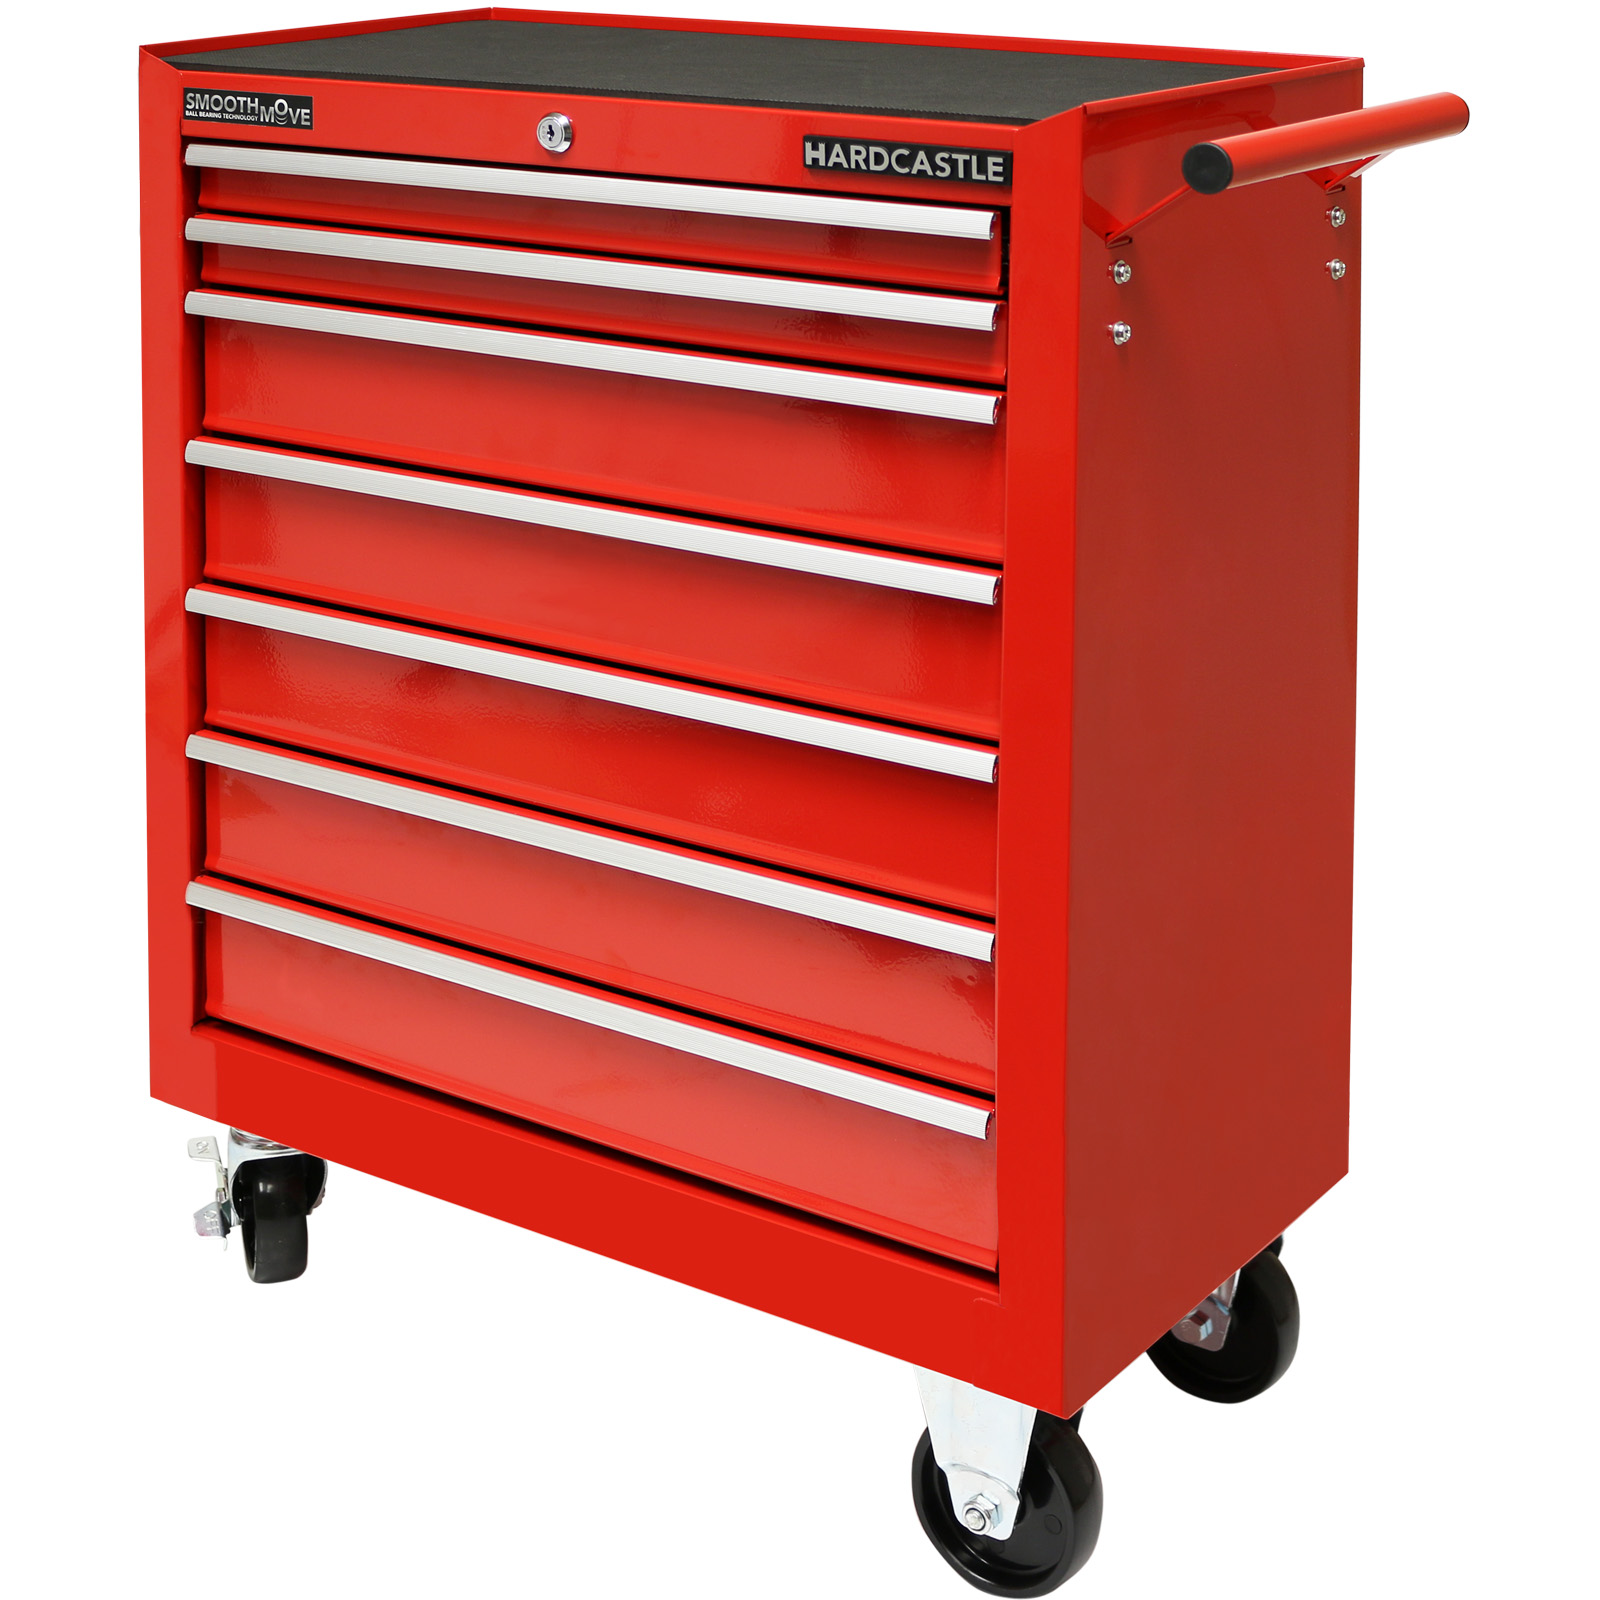 Damaged Kitchen Cabinets For Sale: RED METAL 7 DRAWER LOCKABLE TOOL CHEST/ROLLER